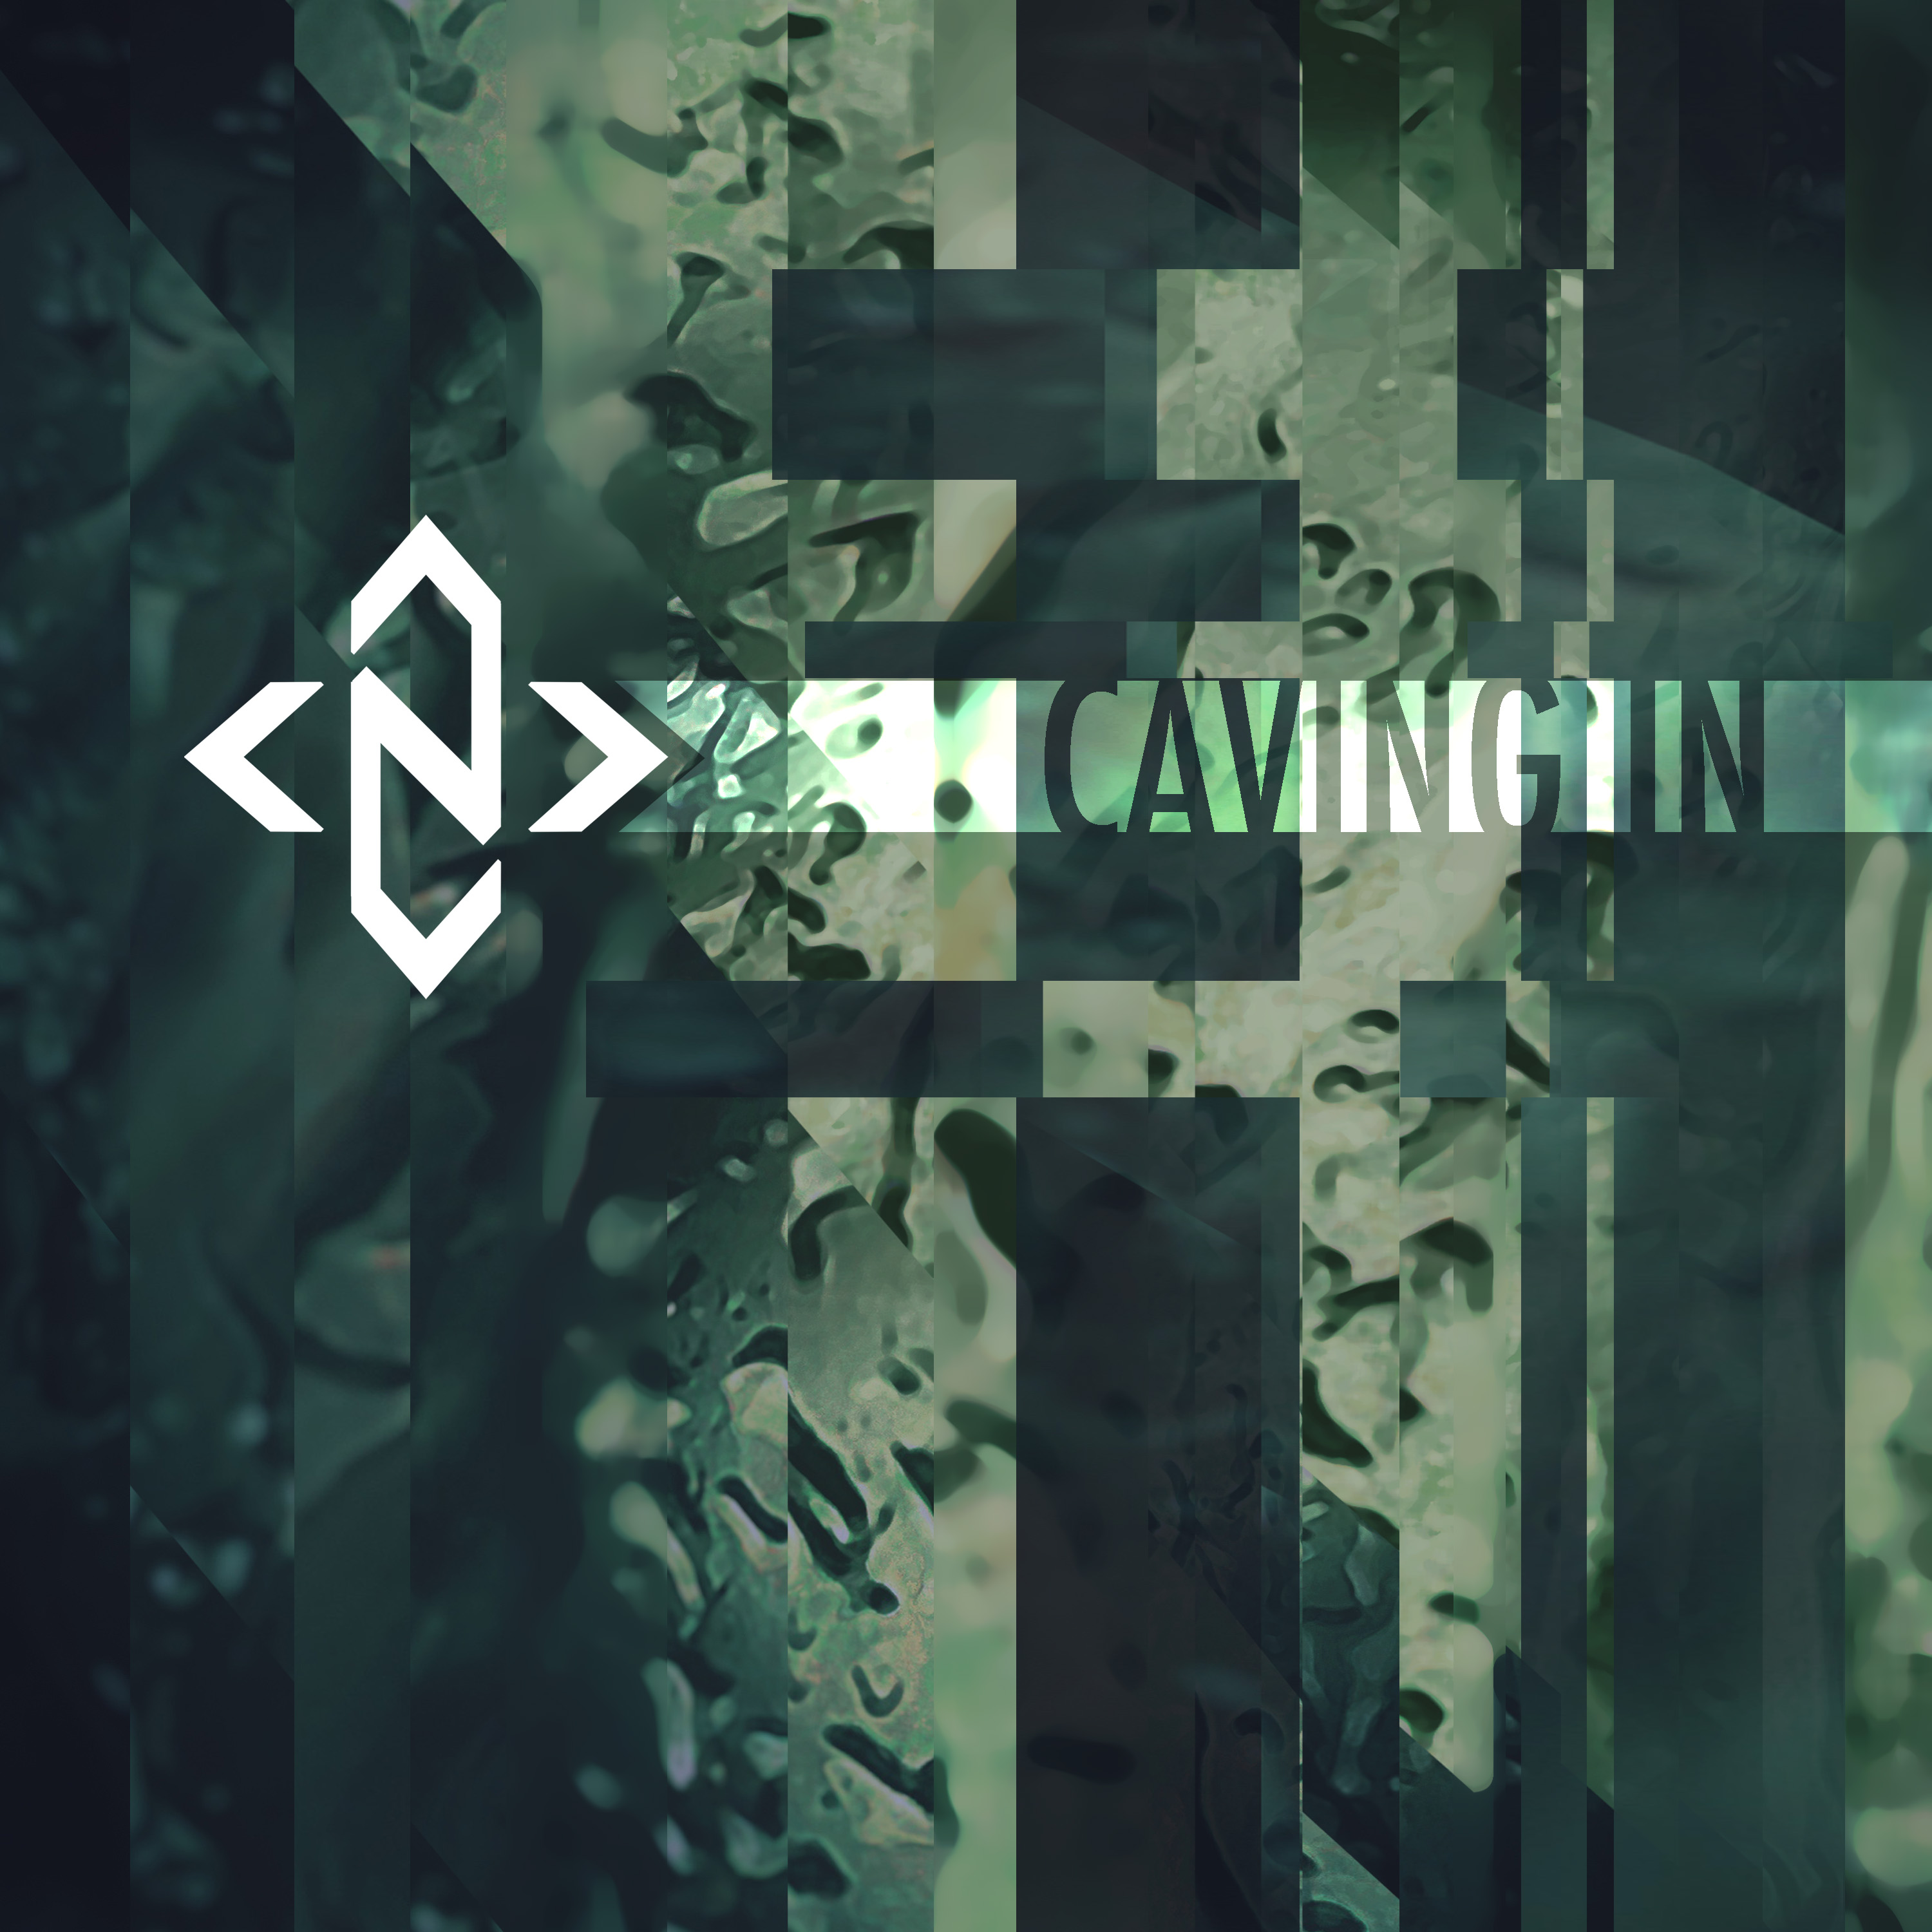 New Single 'Caving in' OUT NOW